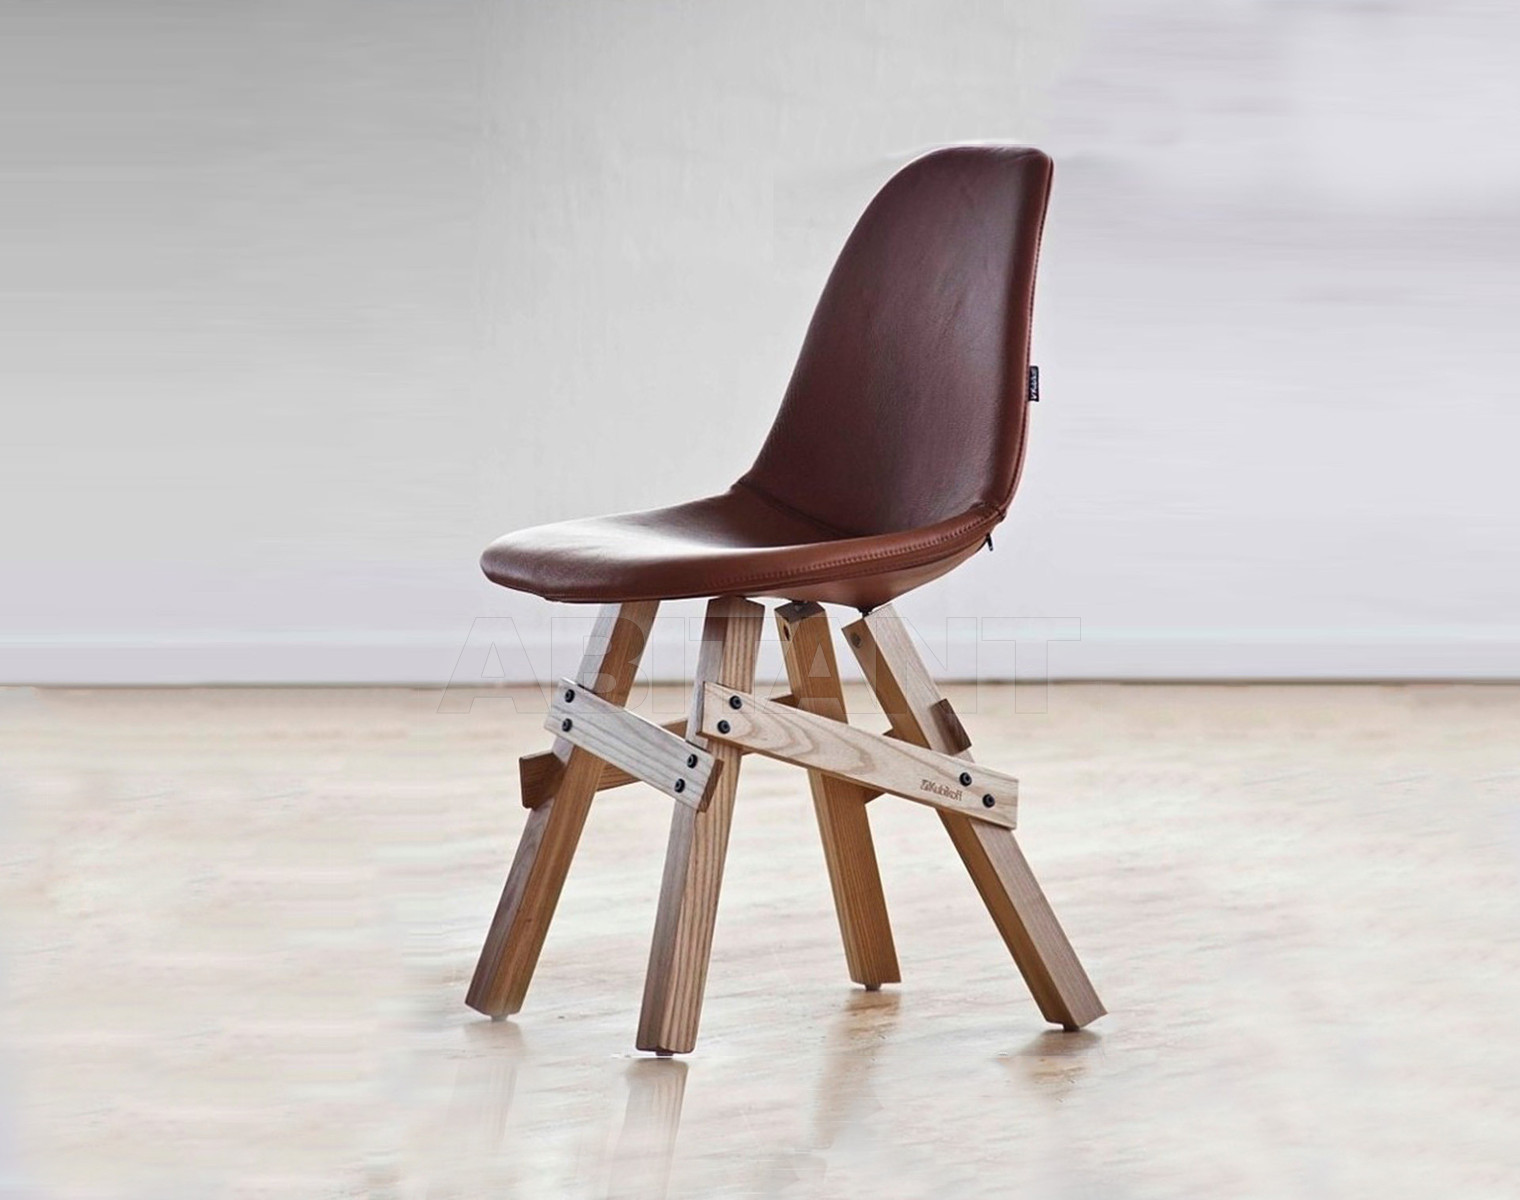 Купить Стул Kubikoff Sander Mulder ICON'Pop'Chair 4